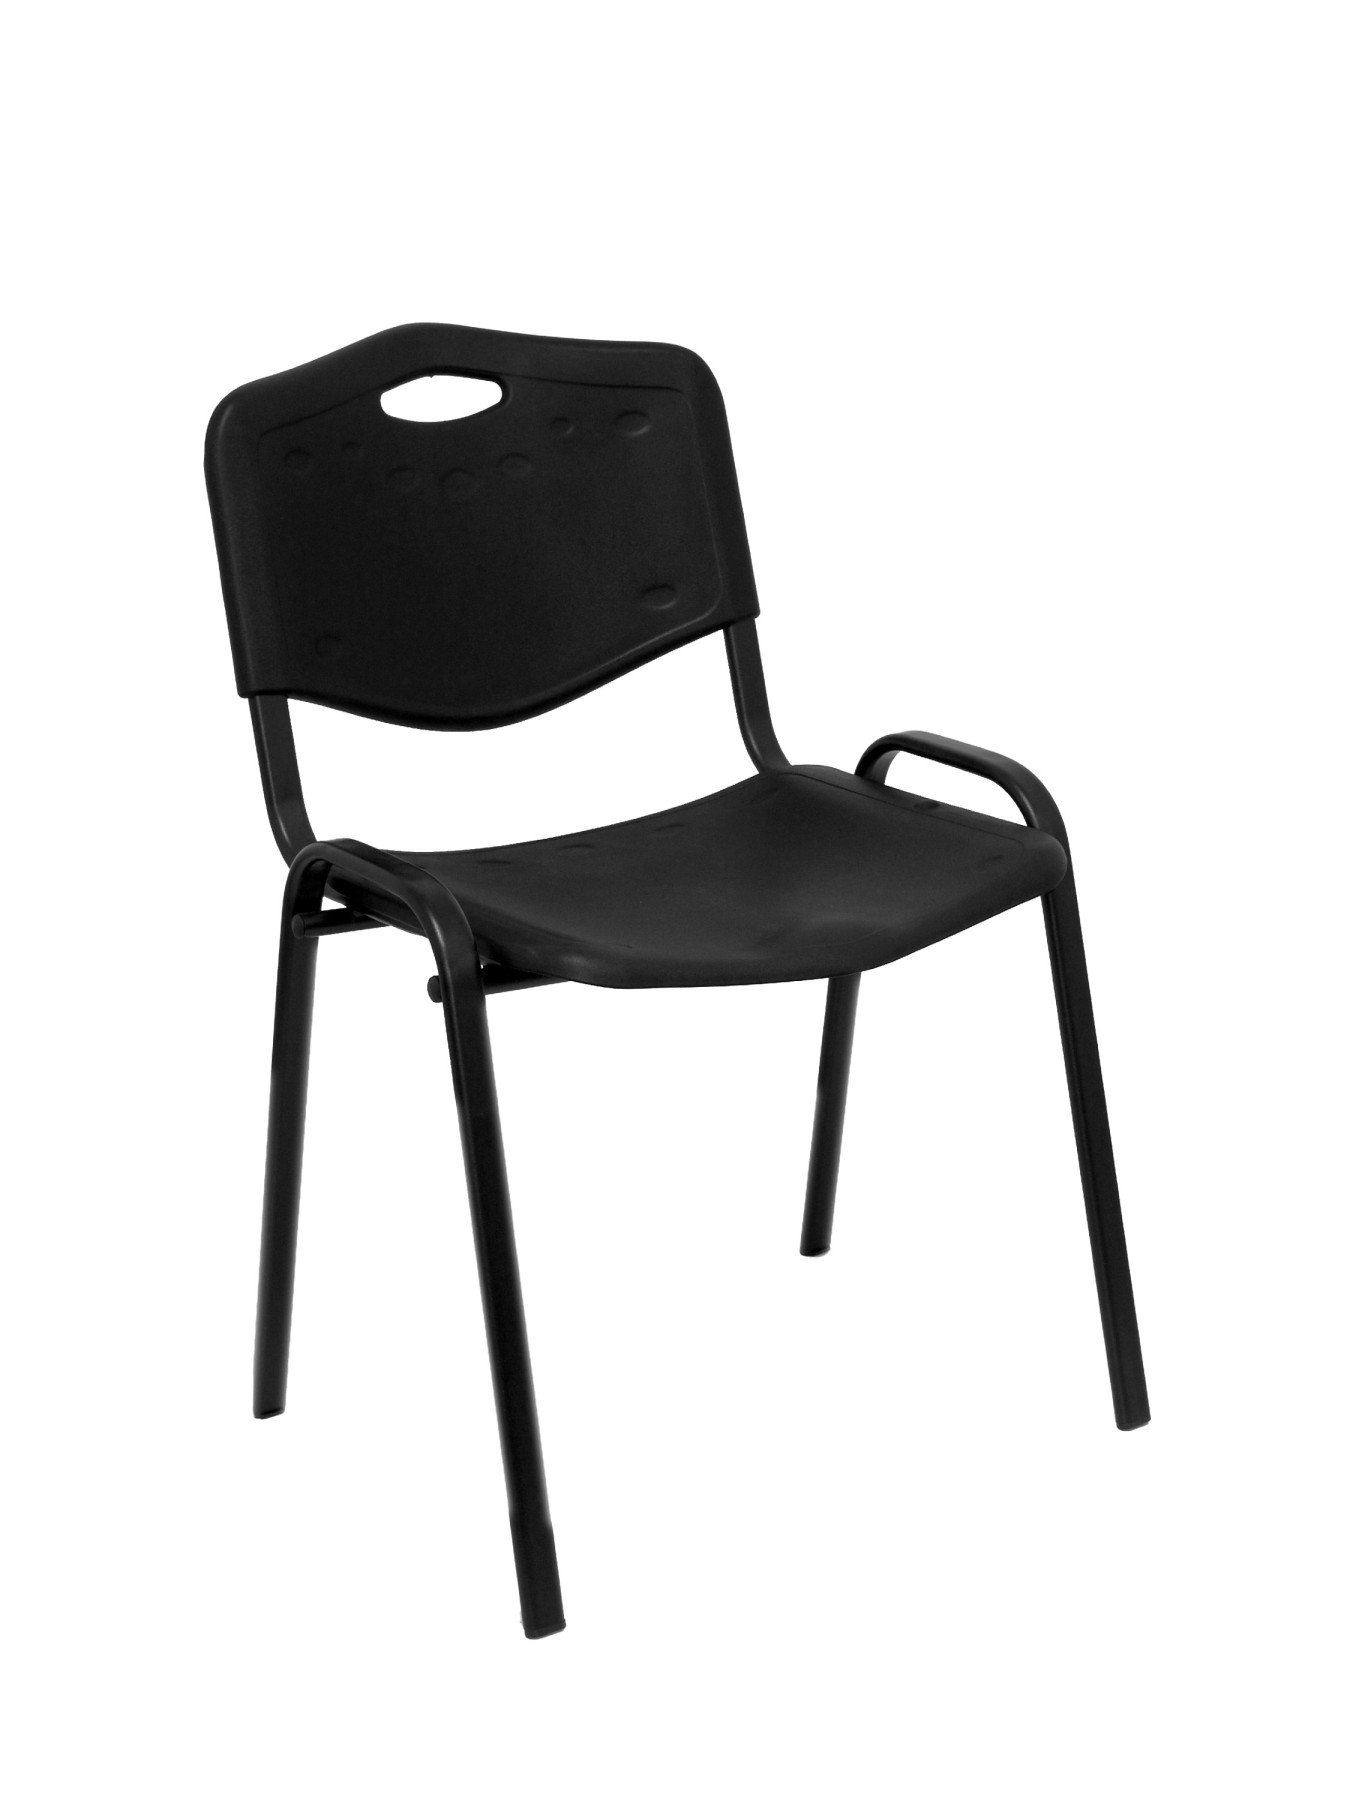 Pack 4 Chairs Confident Desk Ergonomic, Stackable, Multipurpose And Black Color Up Seat And Backstop Structure In PVC Col